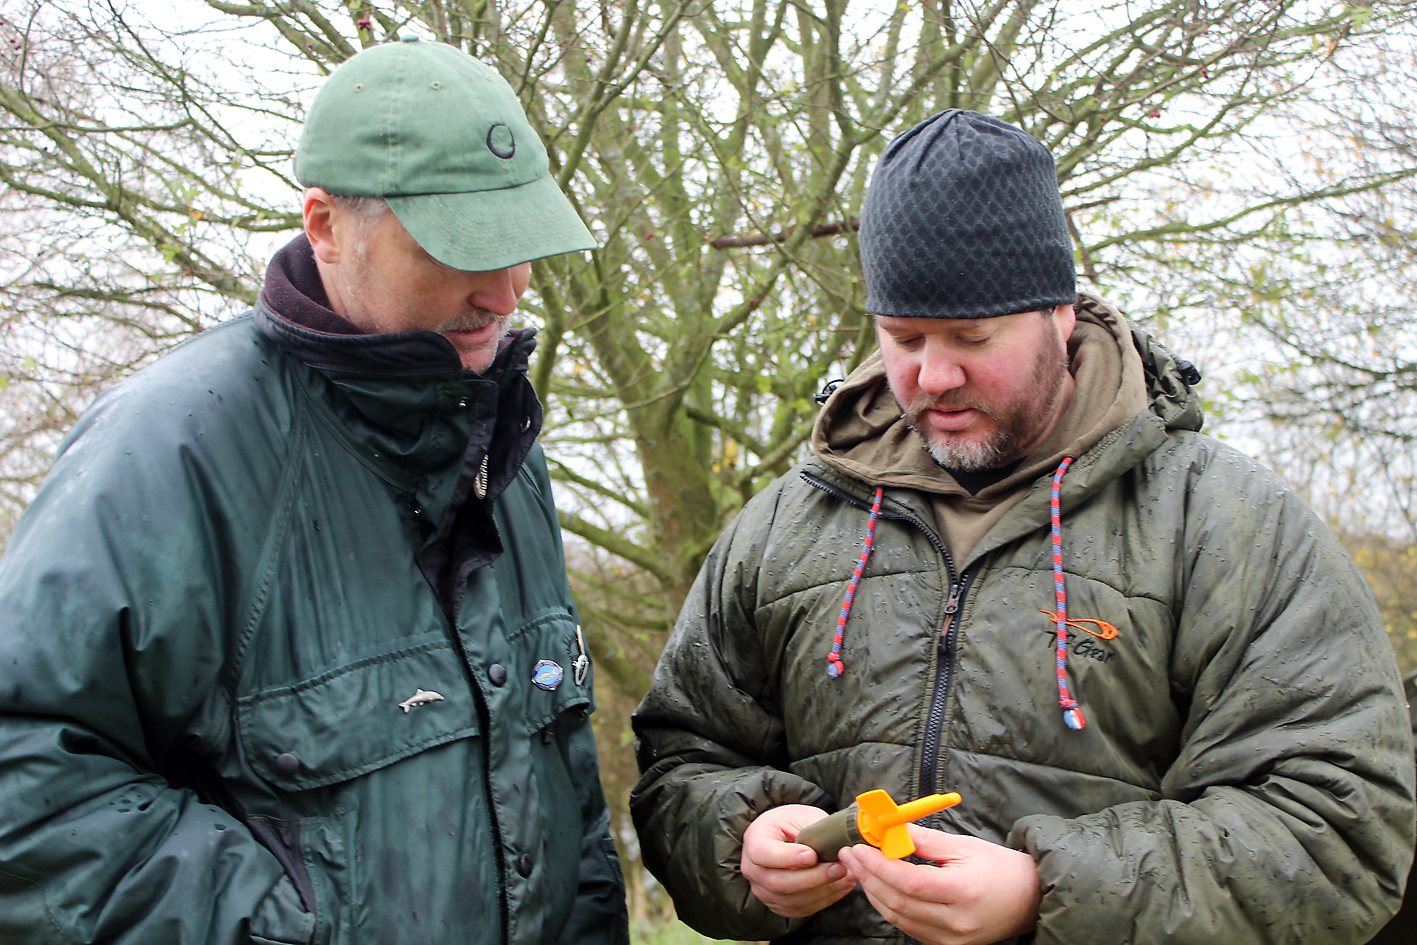 I'm getting the full run down on the FishSpy's technical specifications from Allan (right)